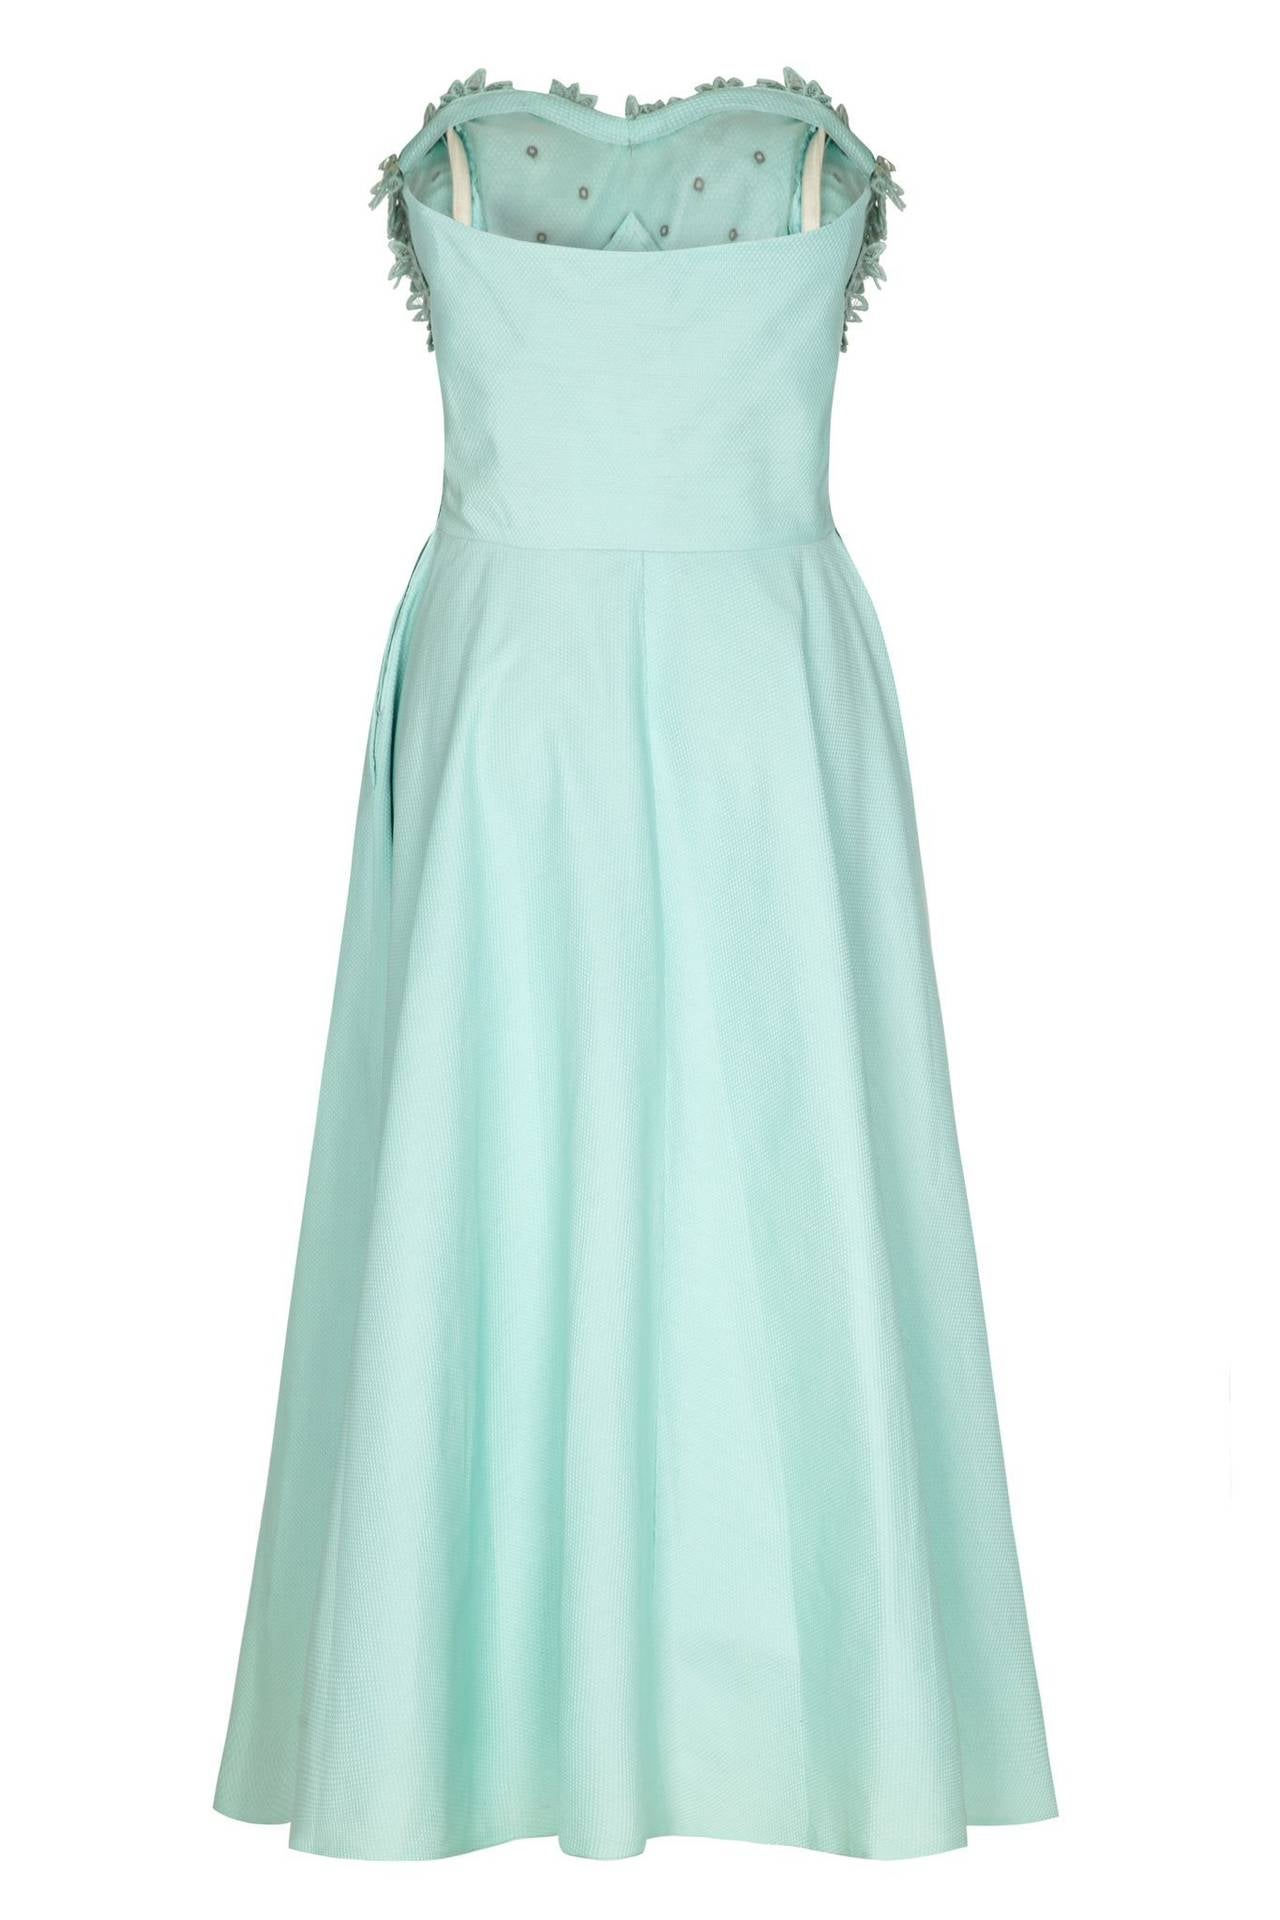 Late 1950s American pale blue textured cotton strapless dress.  This is a great piece and features pretty 3D floral and rhinestone applique to the bust.  It is boned in the bodice for extra support, has layers of net in the calf length skirt for